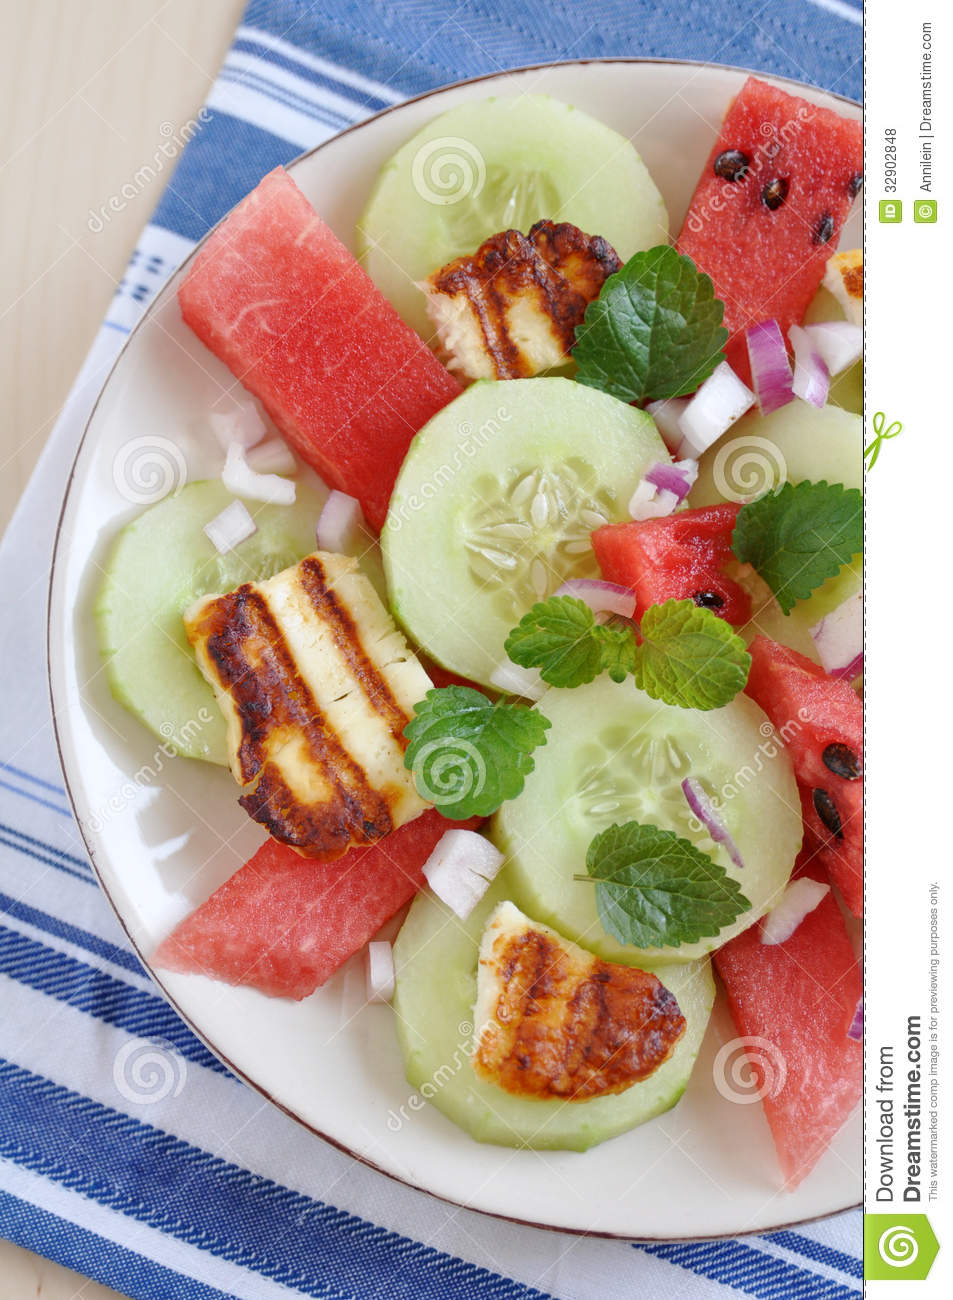 Healthy Water Melon Salad with halloumi cheese.